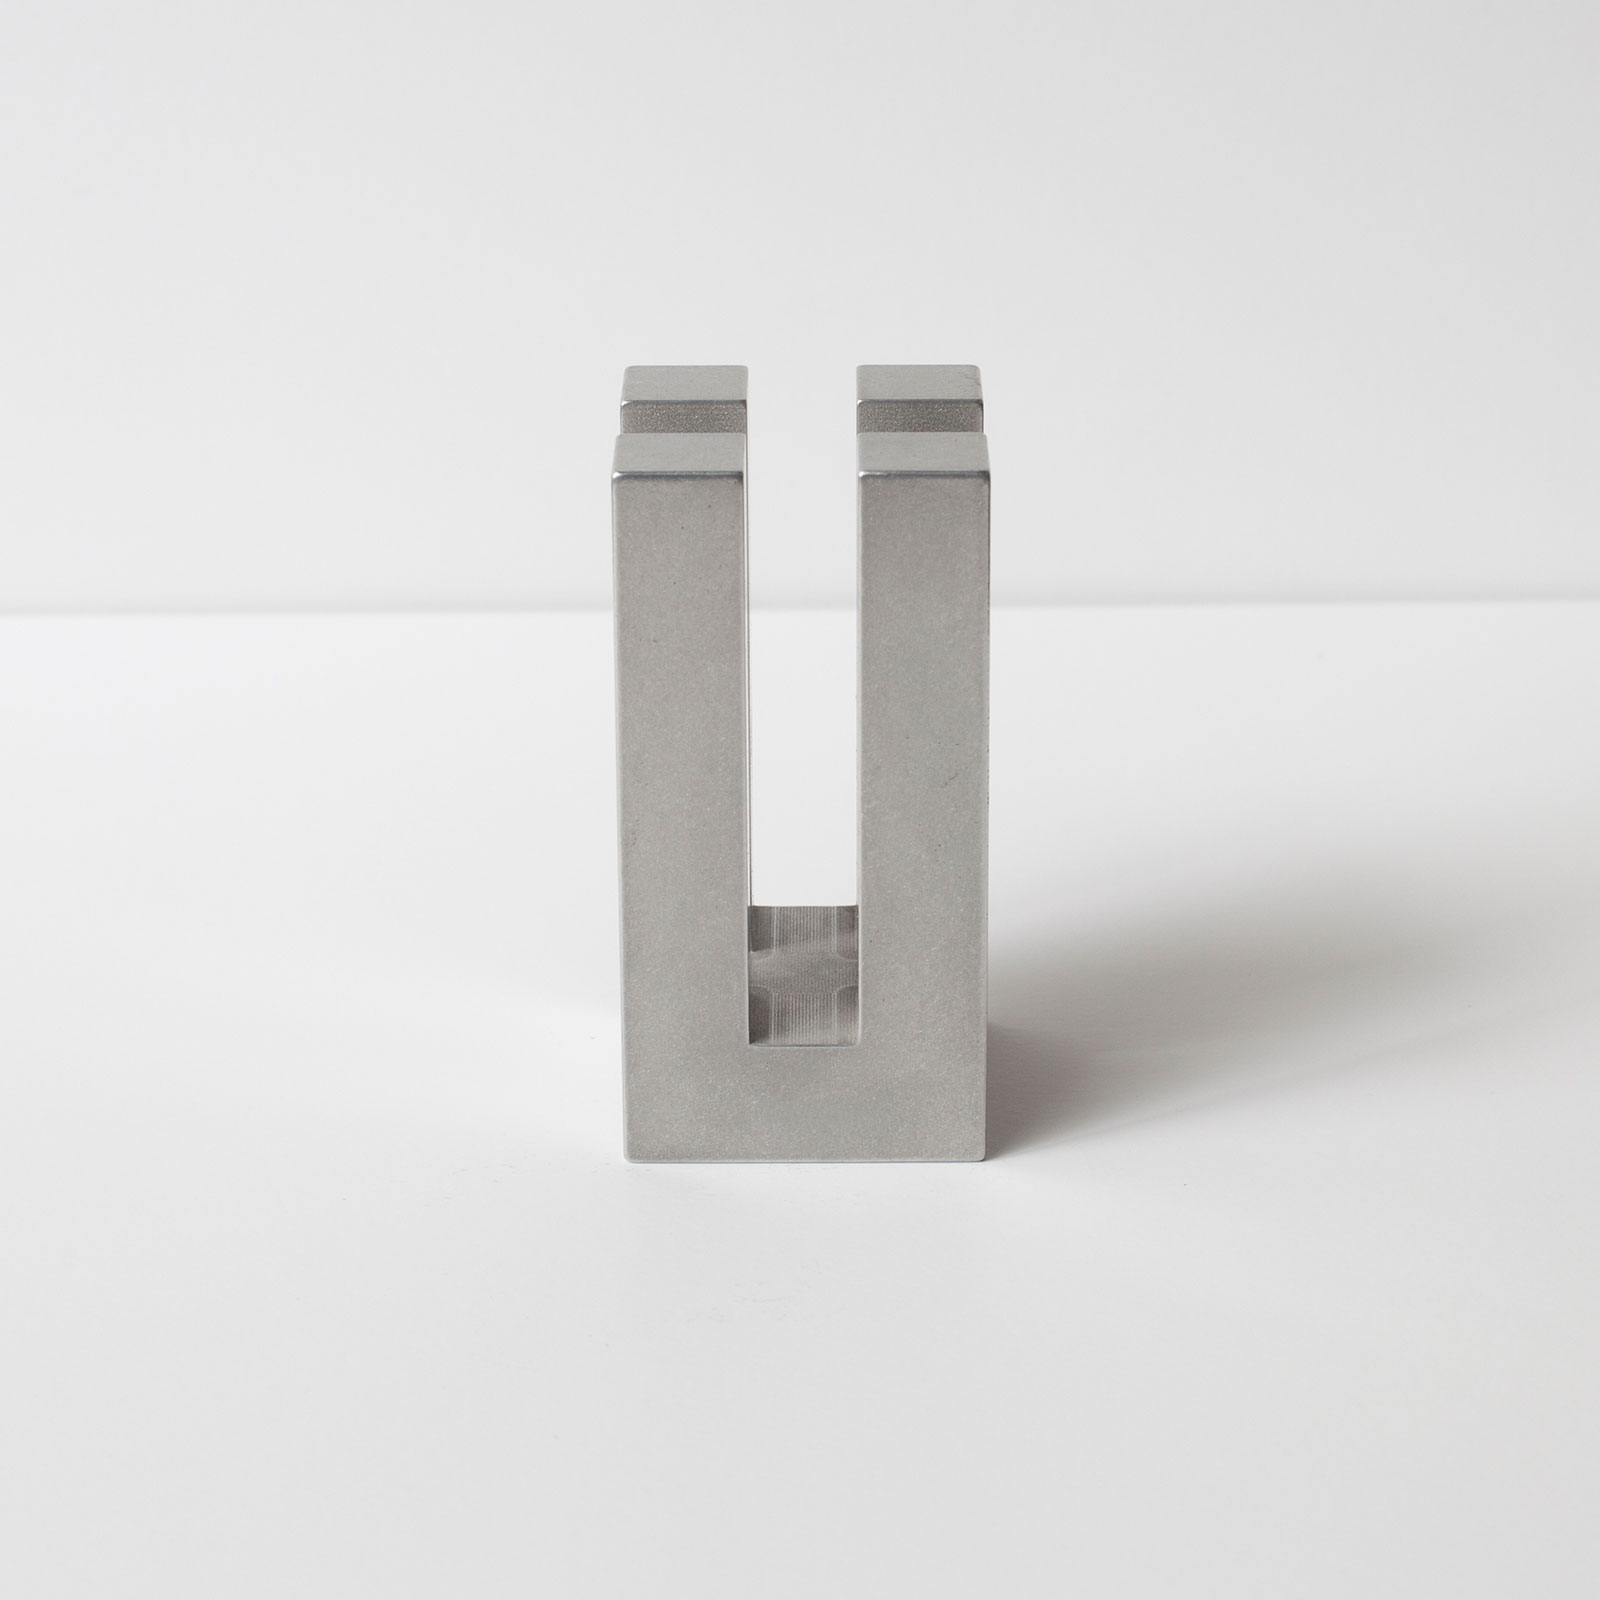 Jeff Tall Candle Holder Aluminium By Studio Acs Hero 3